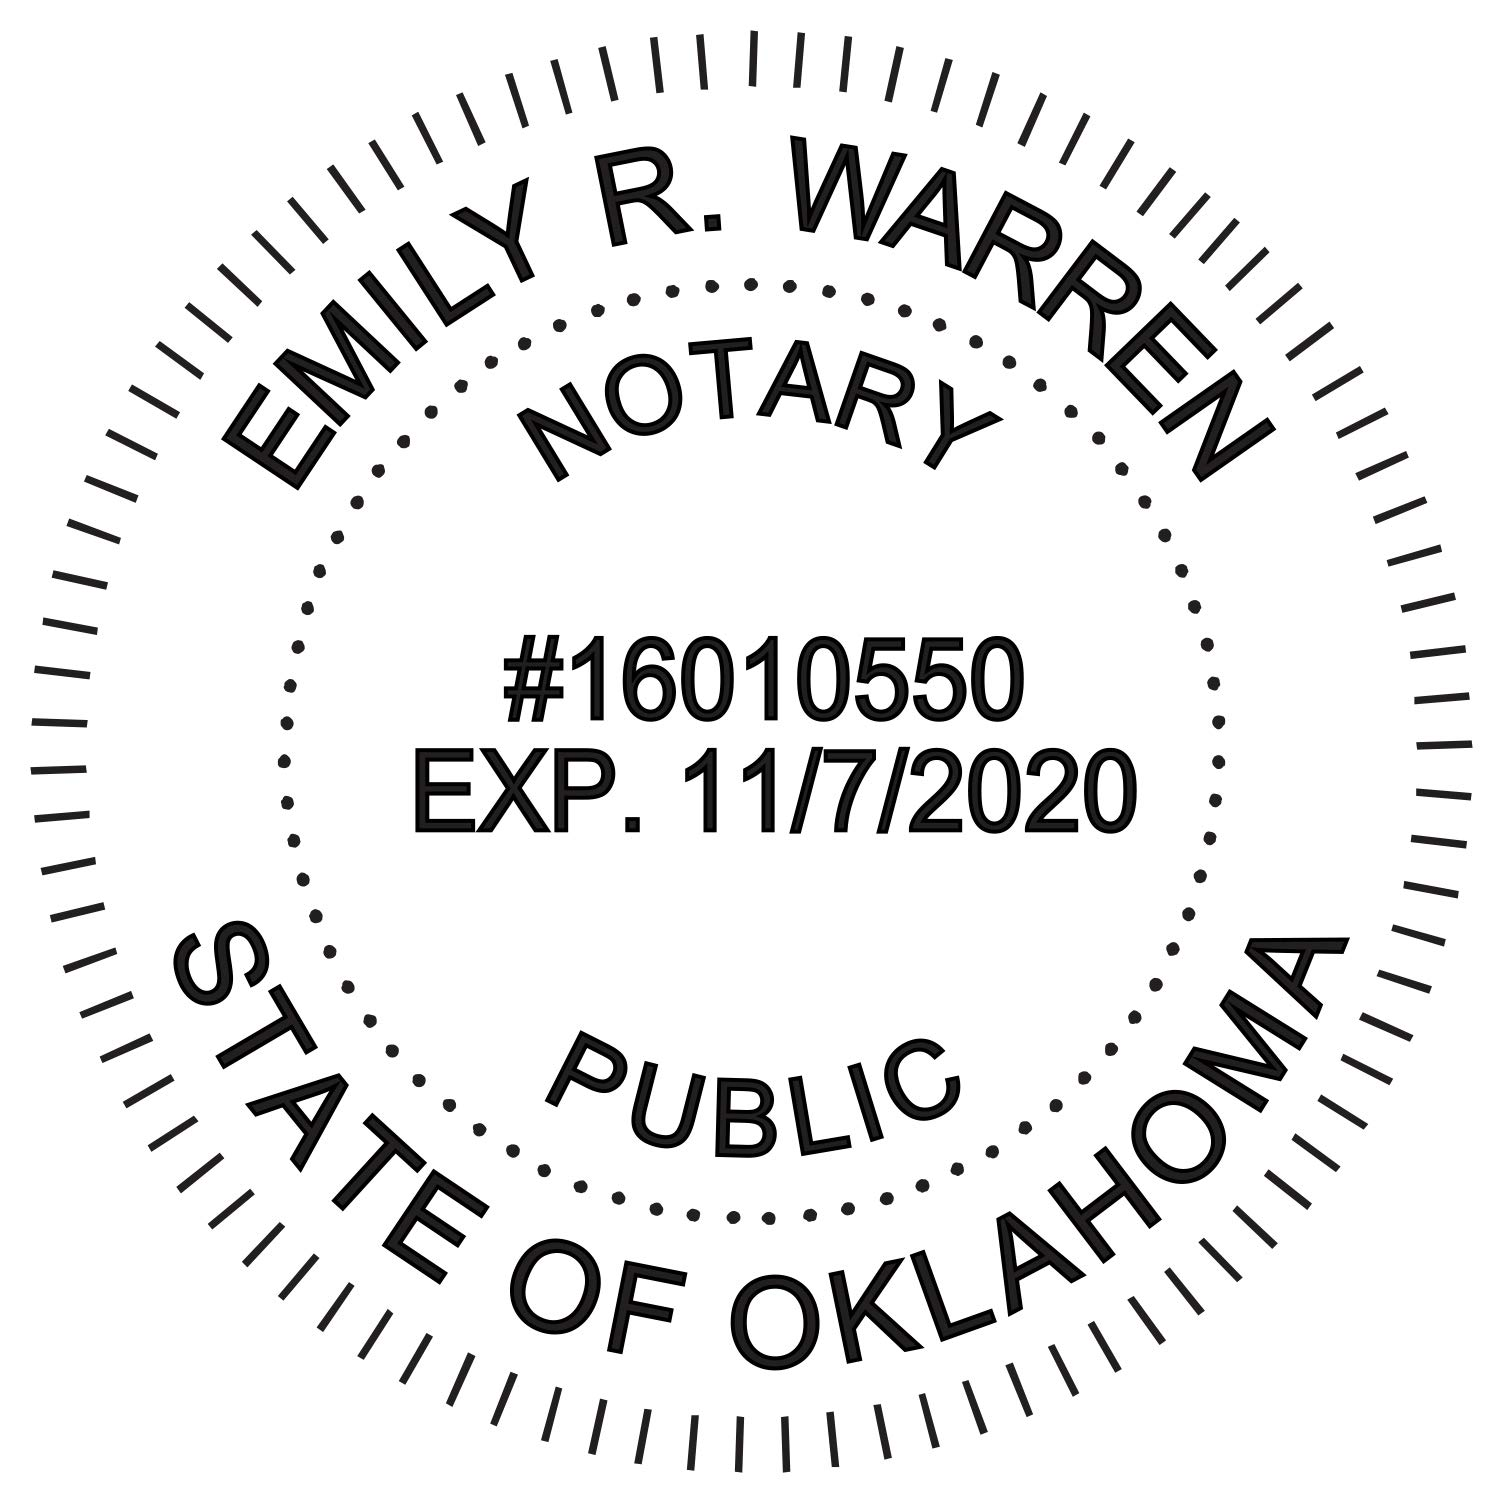 GEORGIA CUSTOM Notary Round Self-Inking Official NOTARY SEAL RUBBER STAMP